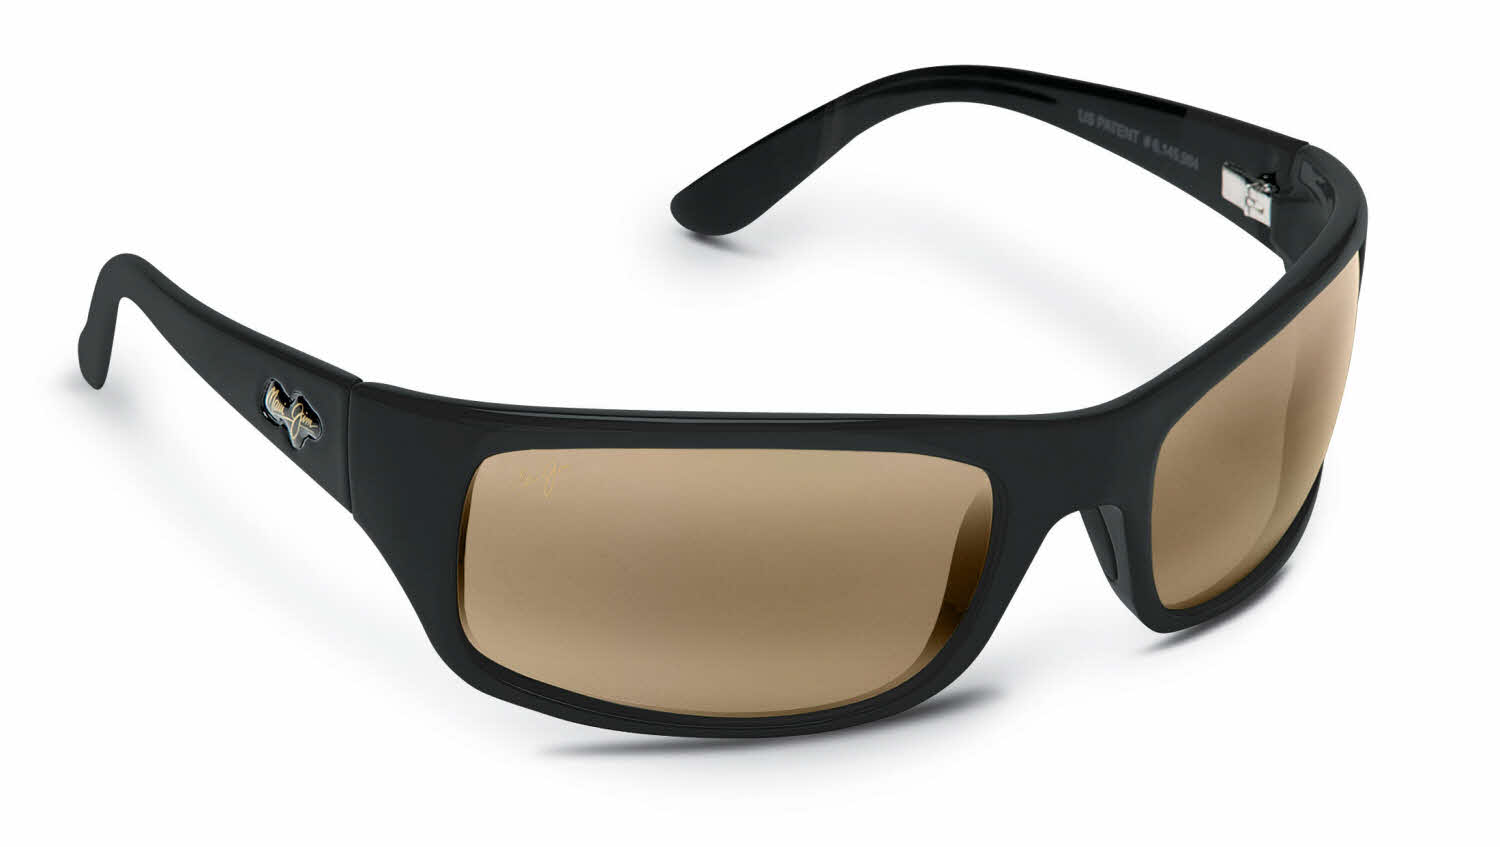 Maui Jim Peahi-202 Prescription Sunglasses